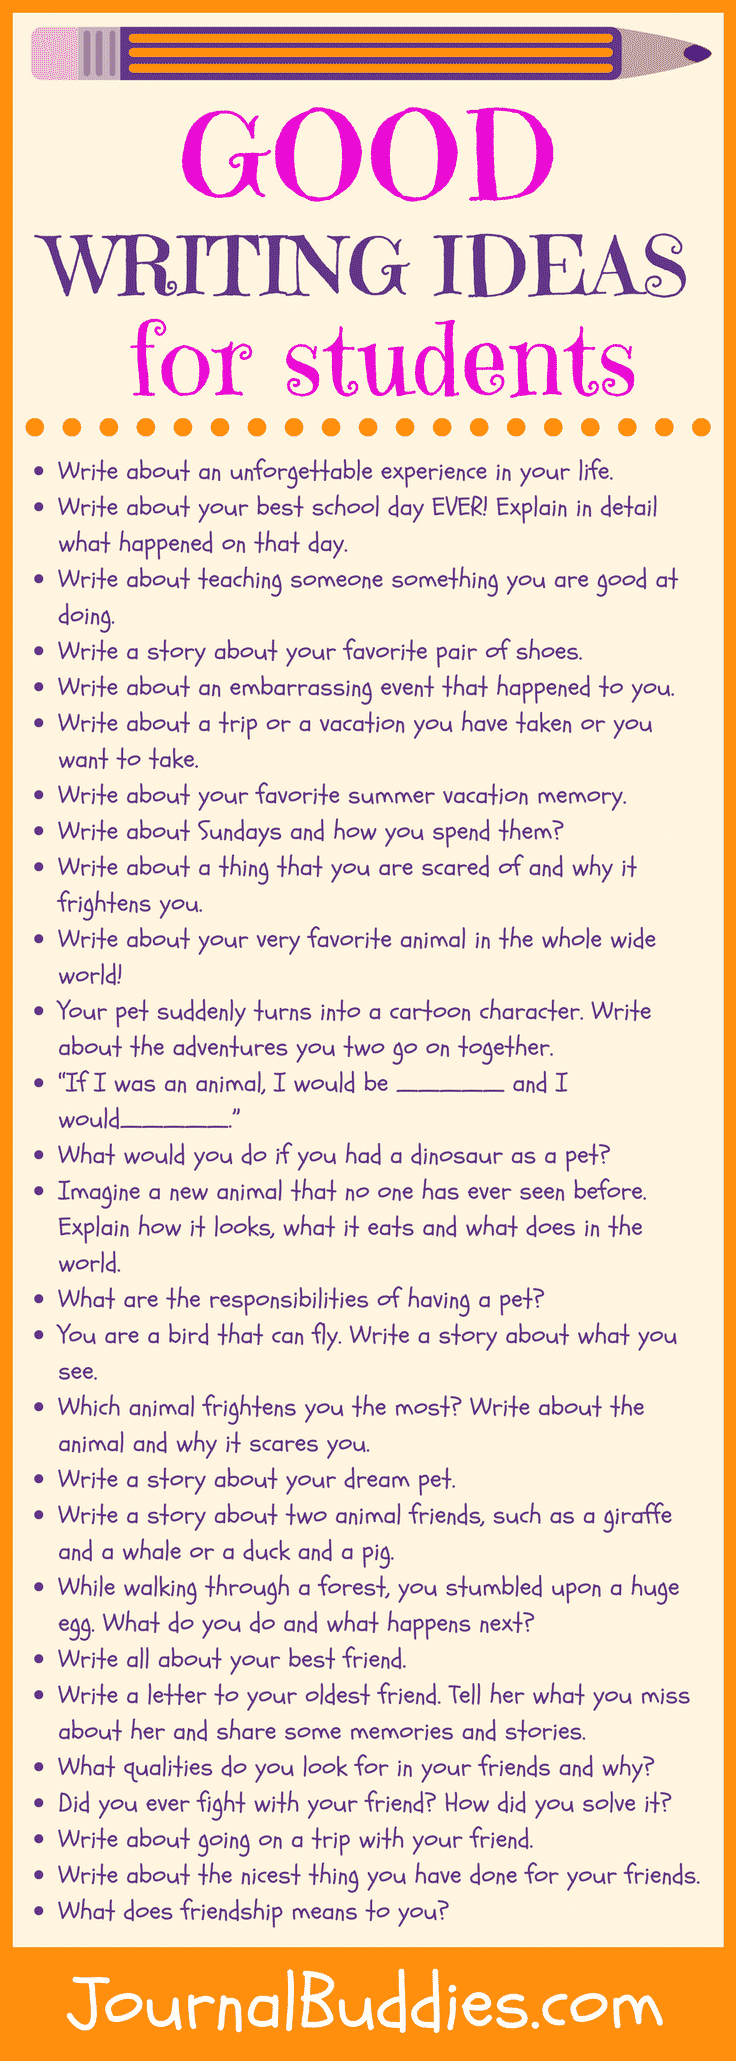 Encourage kids to stretch their imagination and go deeper into their creativity with these good writing ideas. Children who write consistently tend to have a strong sense of self-confidence in their ability to creatively express their thoughts, ideas, and opinions.